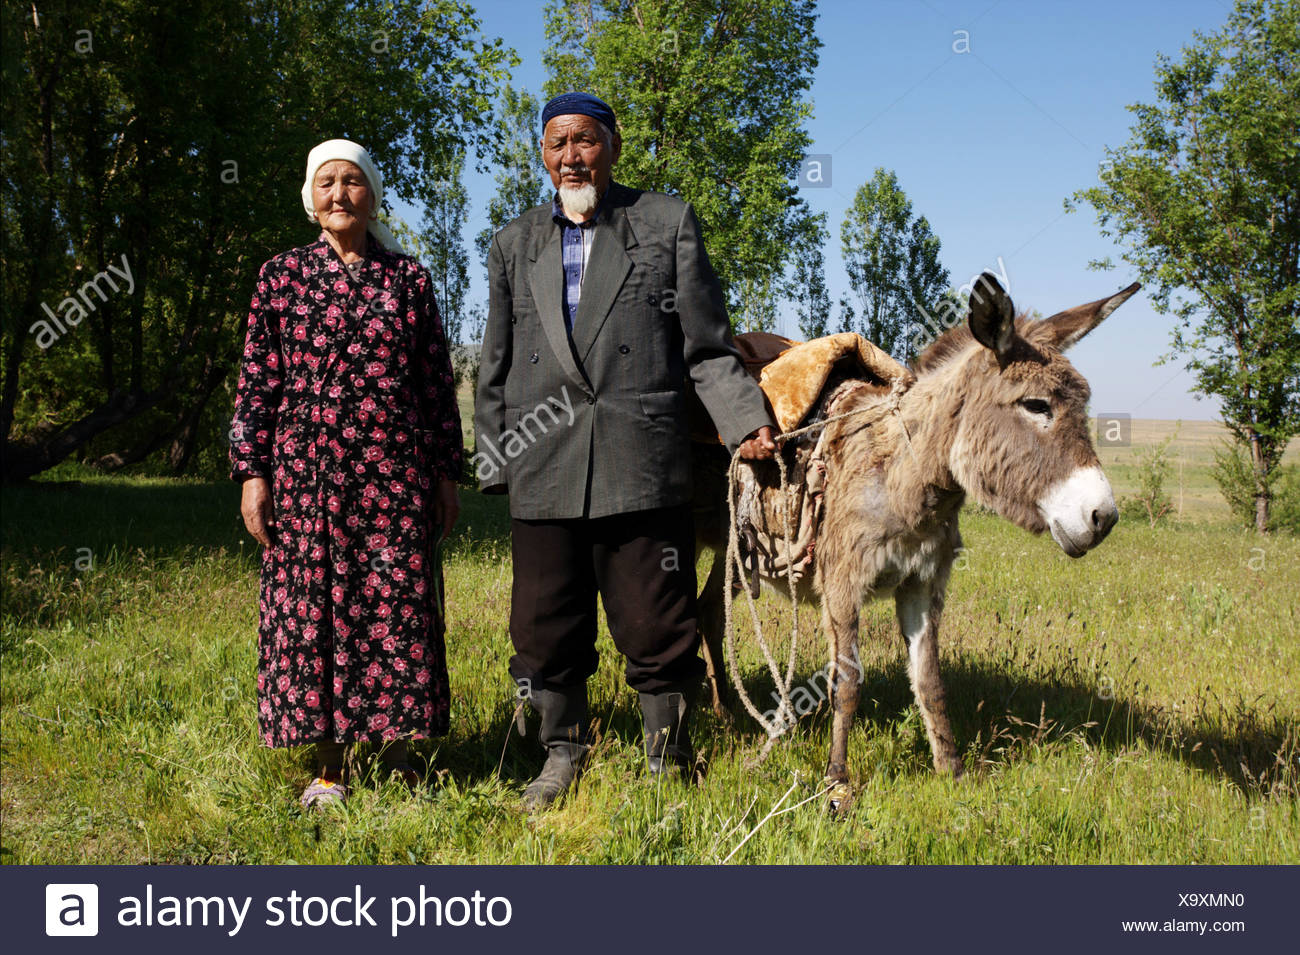 kazakhstanian-couple-with-donkey-come-ba